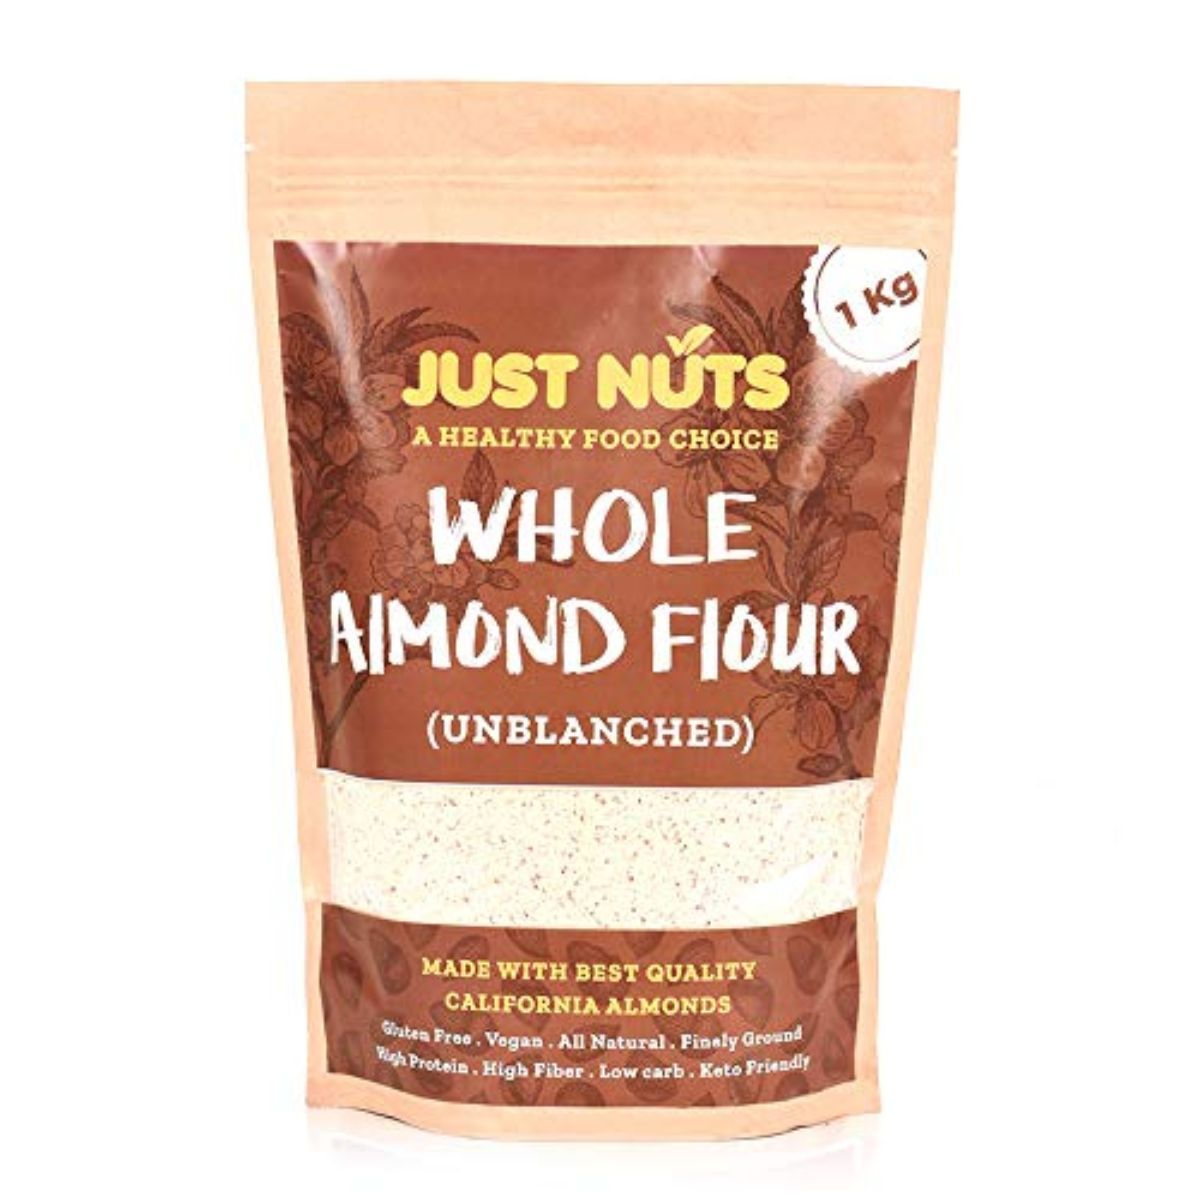 Whole Almond Flour with Skin (Gluten Free, Vegan, Low Card & Unblanched)